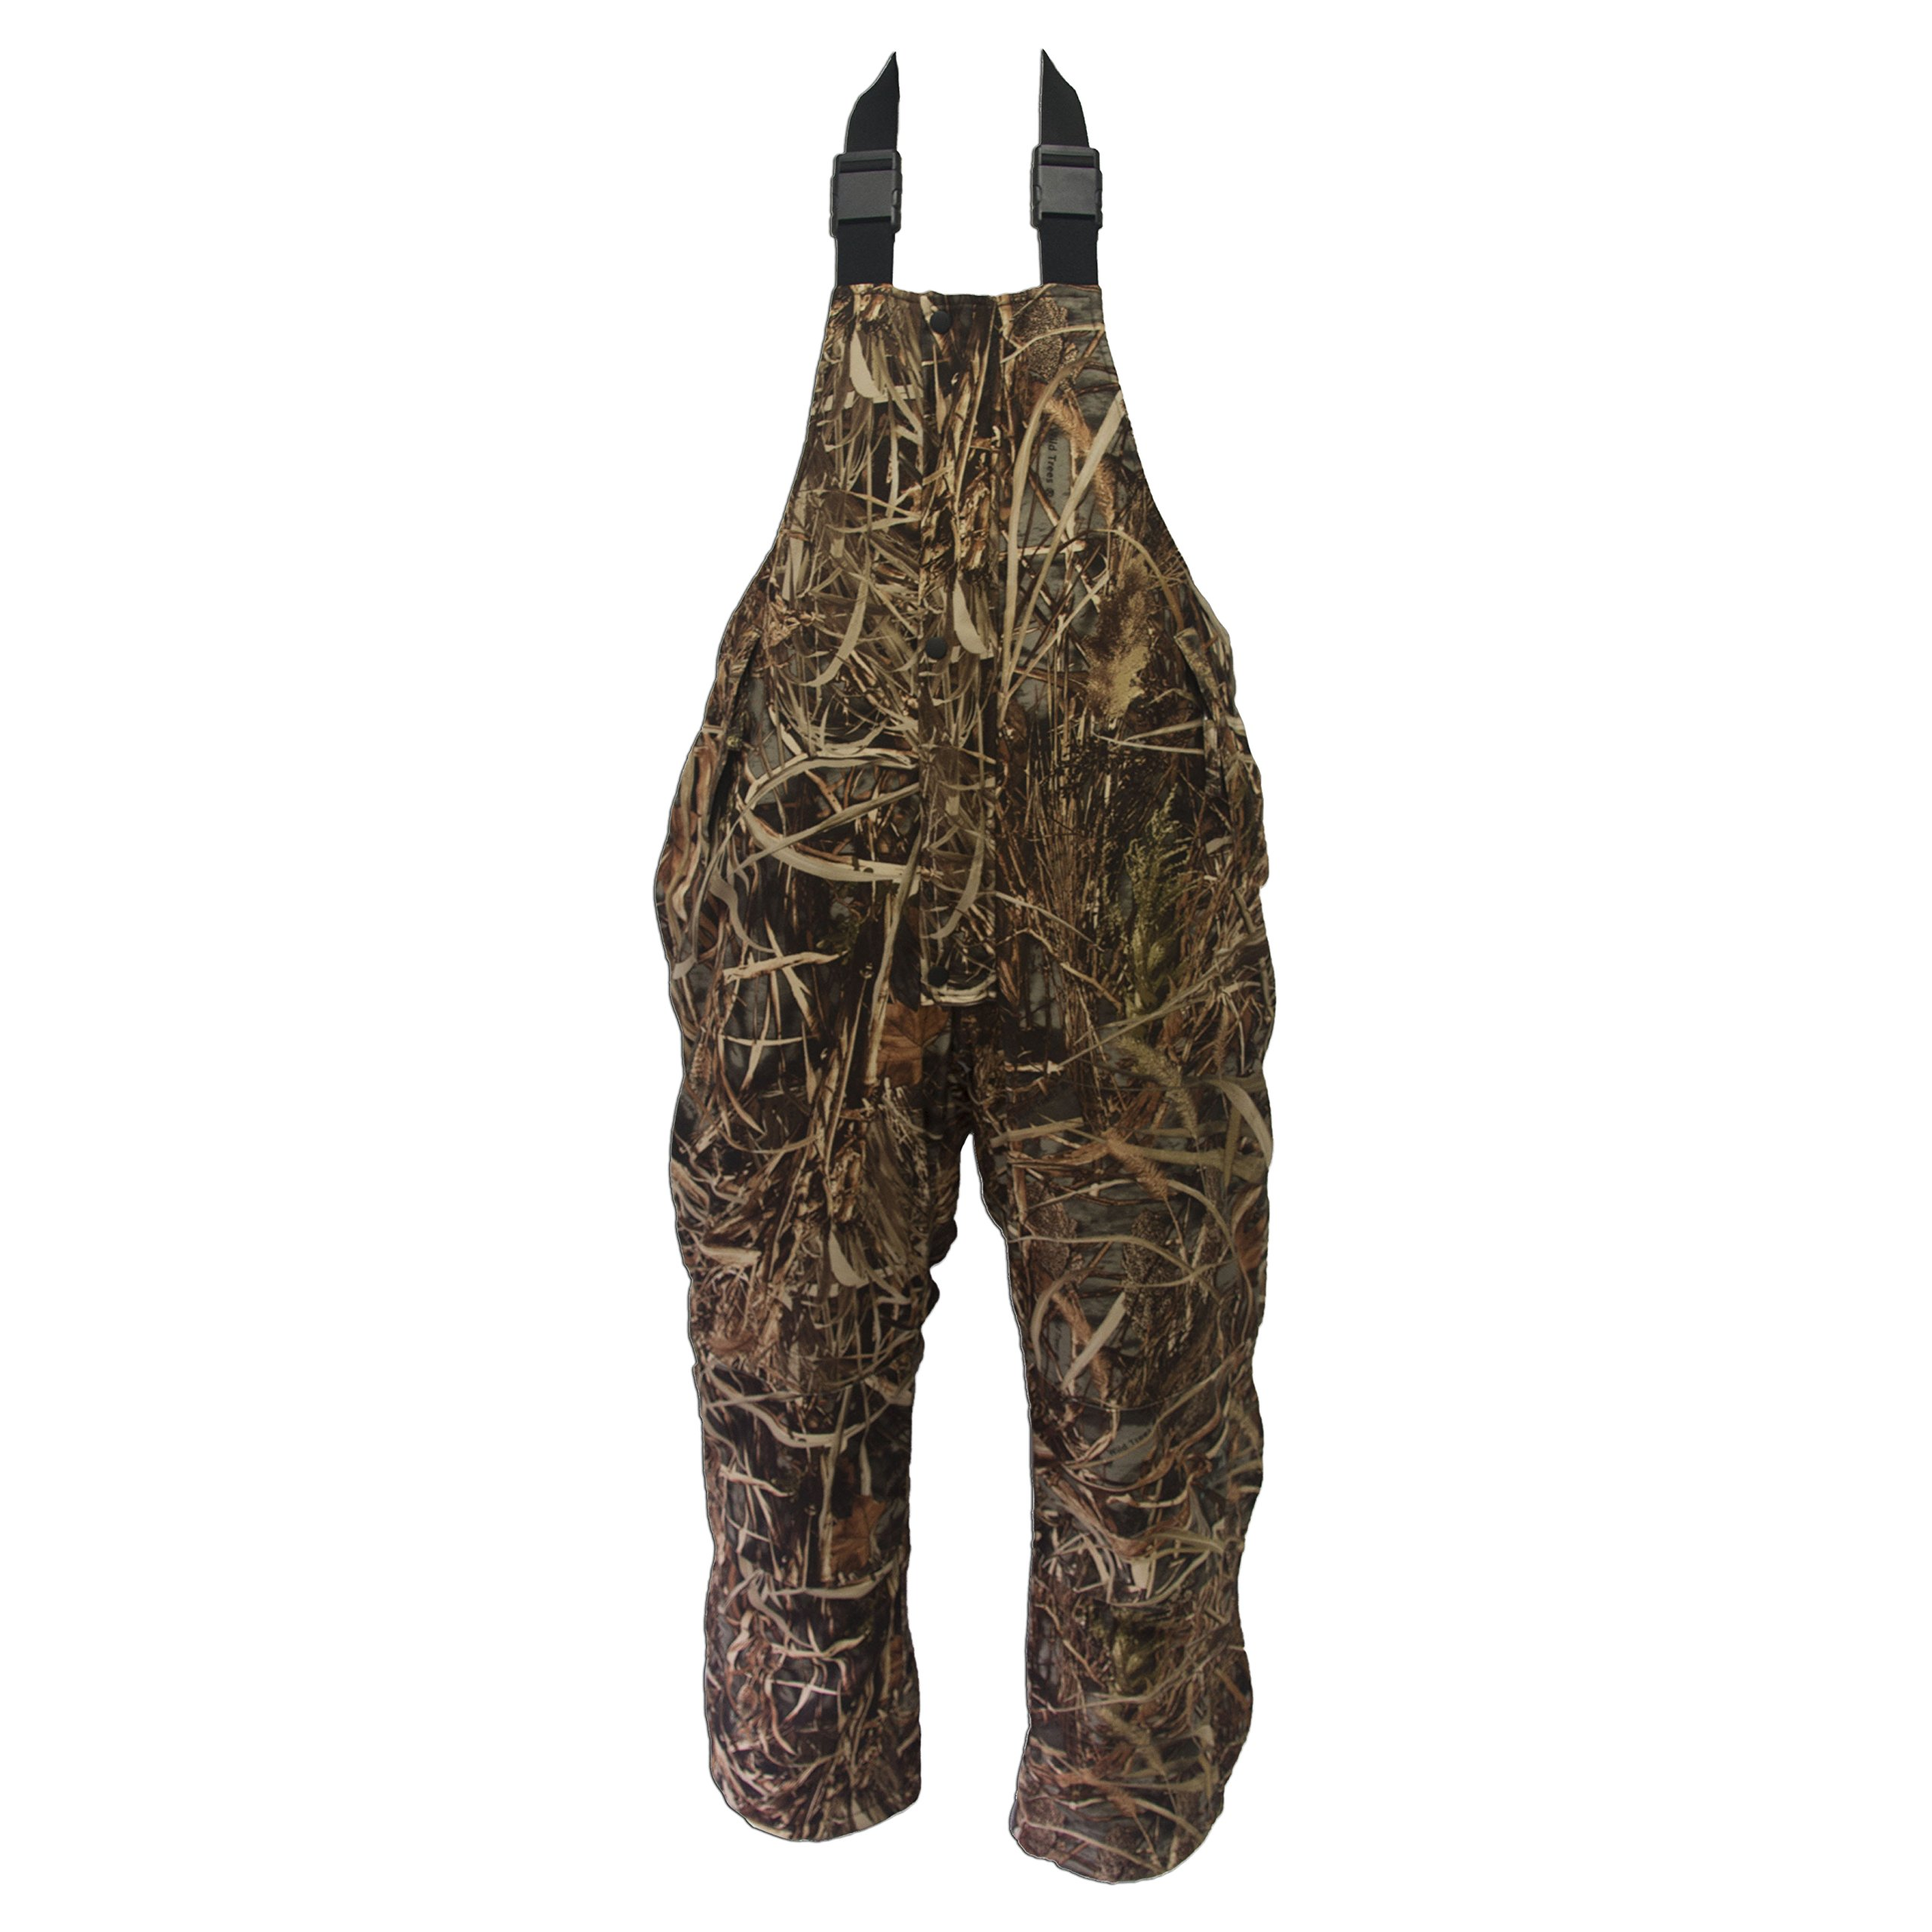 Wildfowler Waterproof Insulated Bibs, Wild Grass